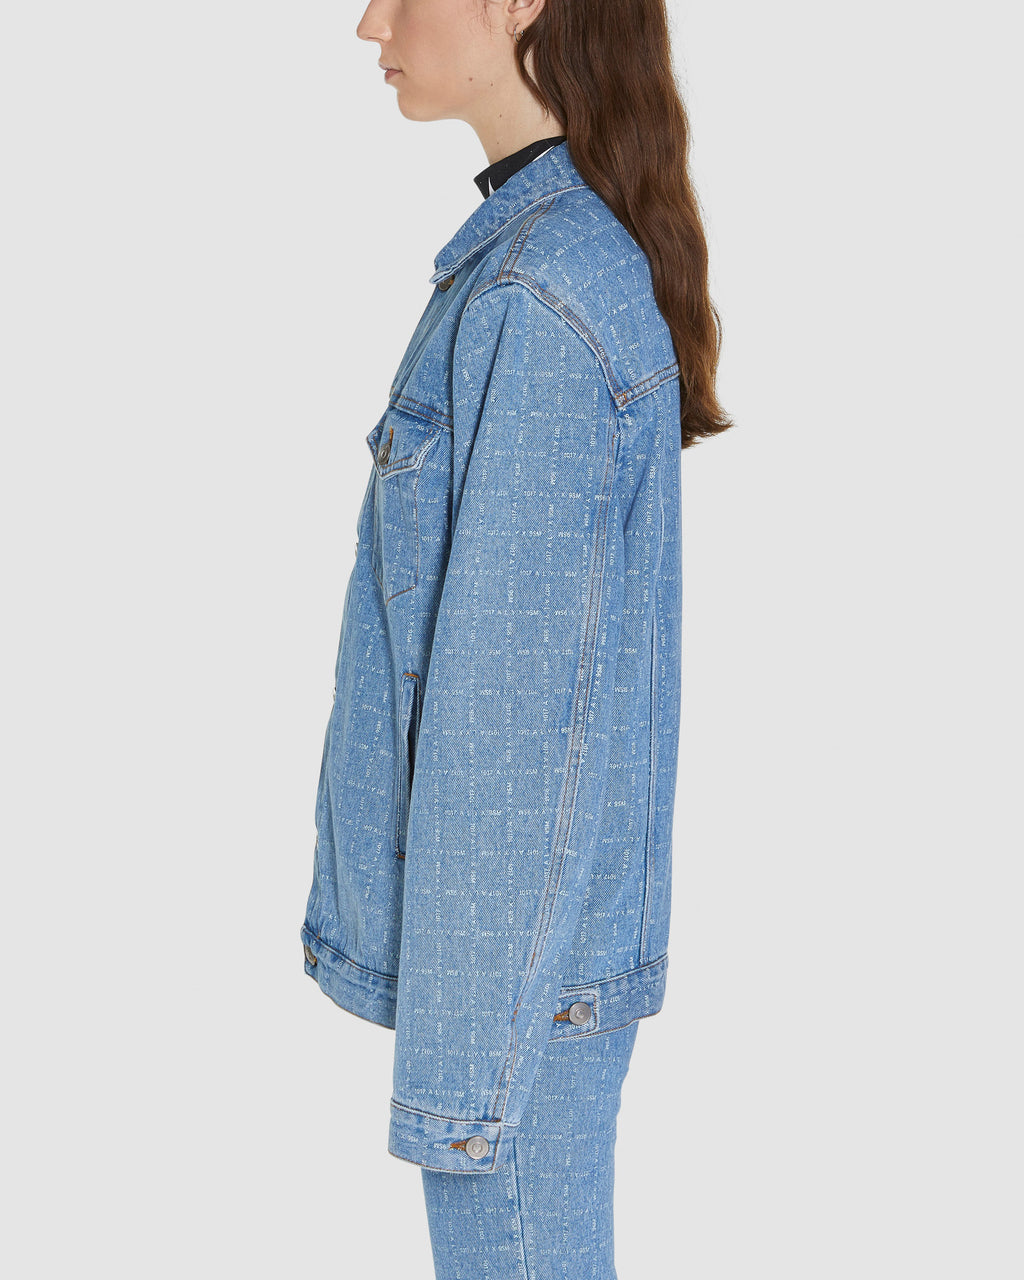 LOGO CHECK DENIM JACKET